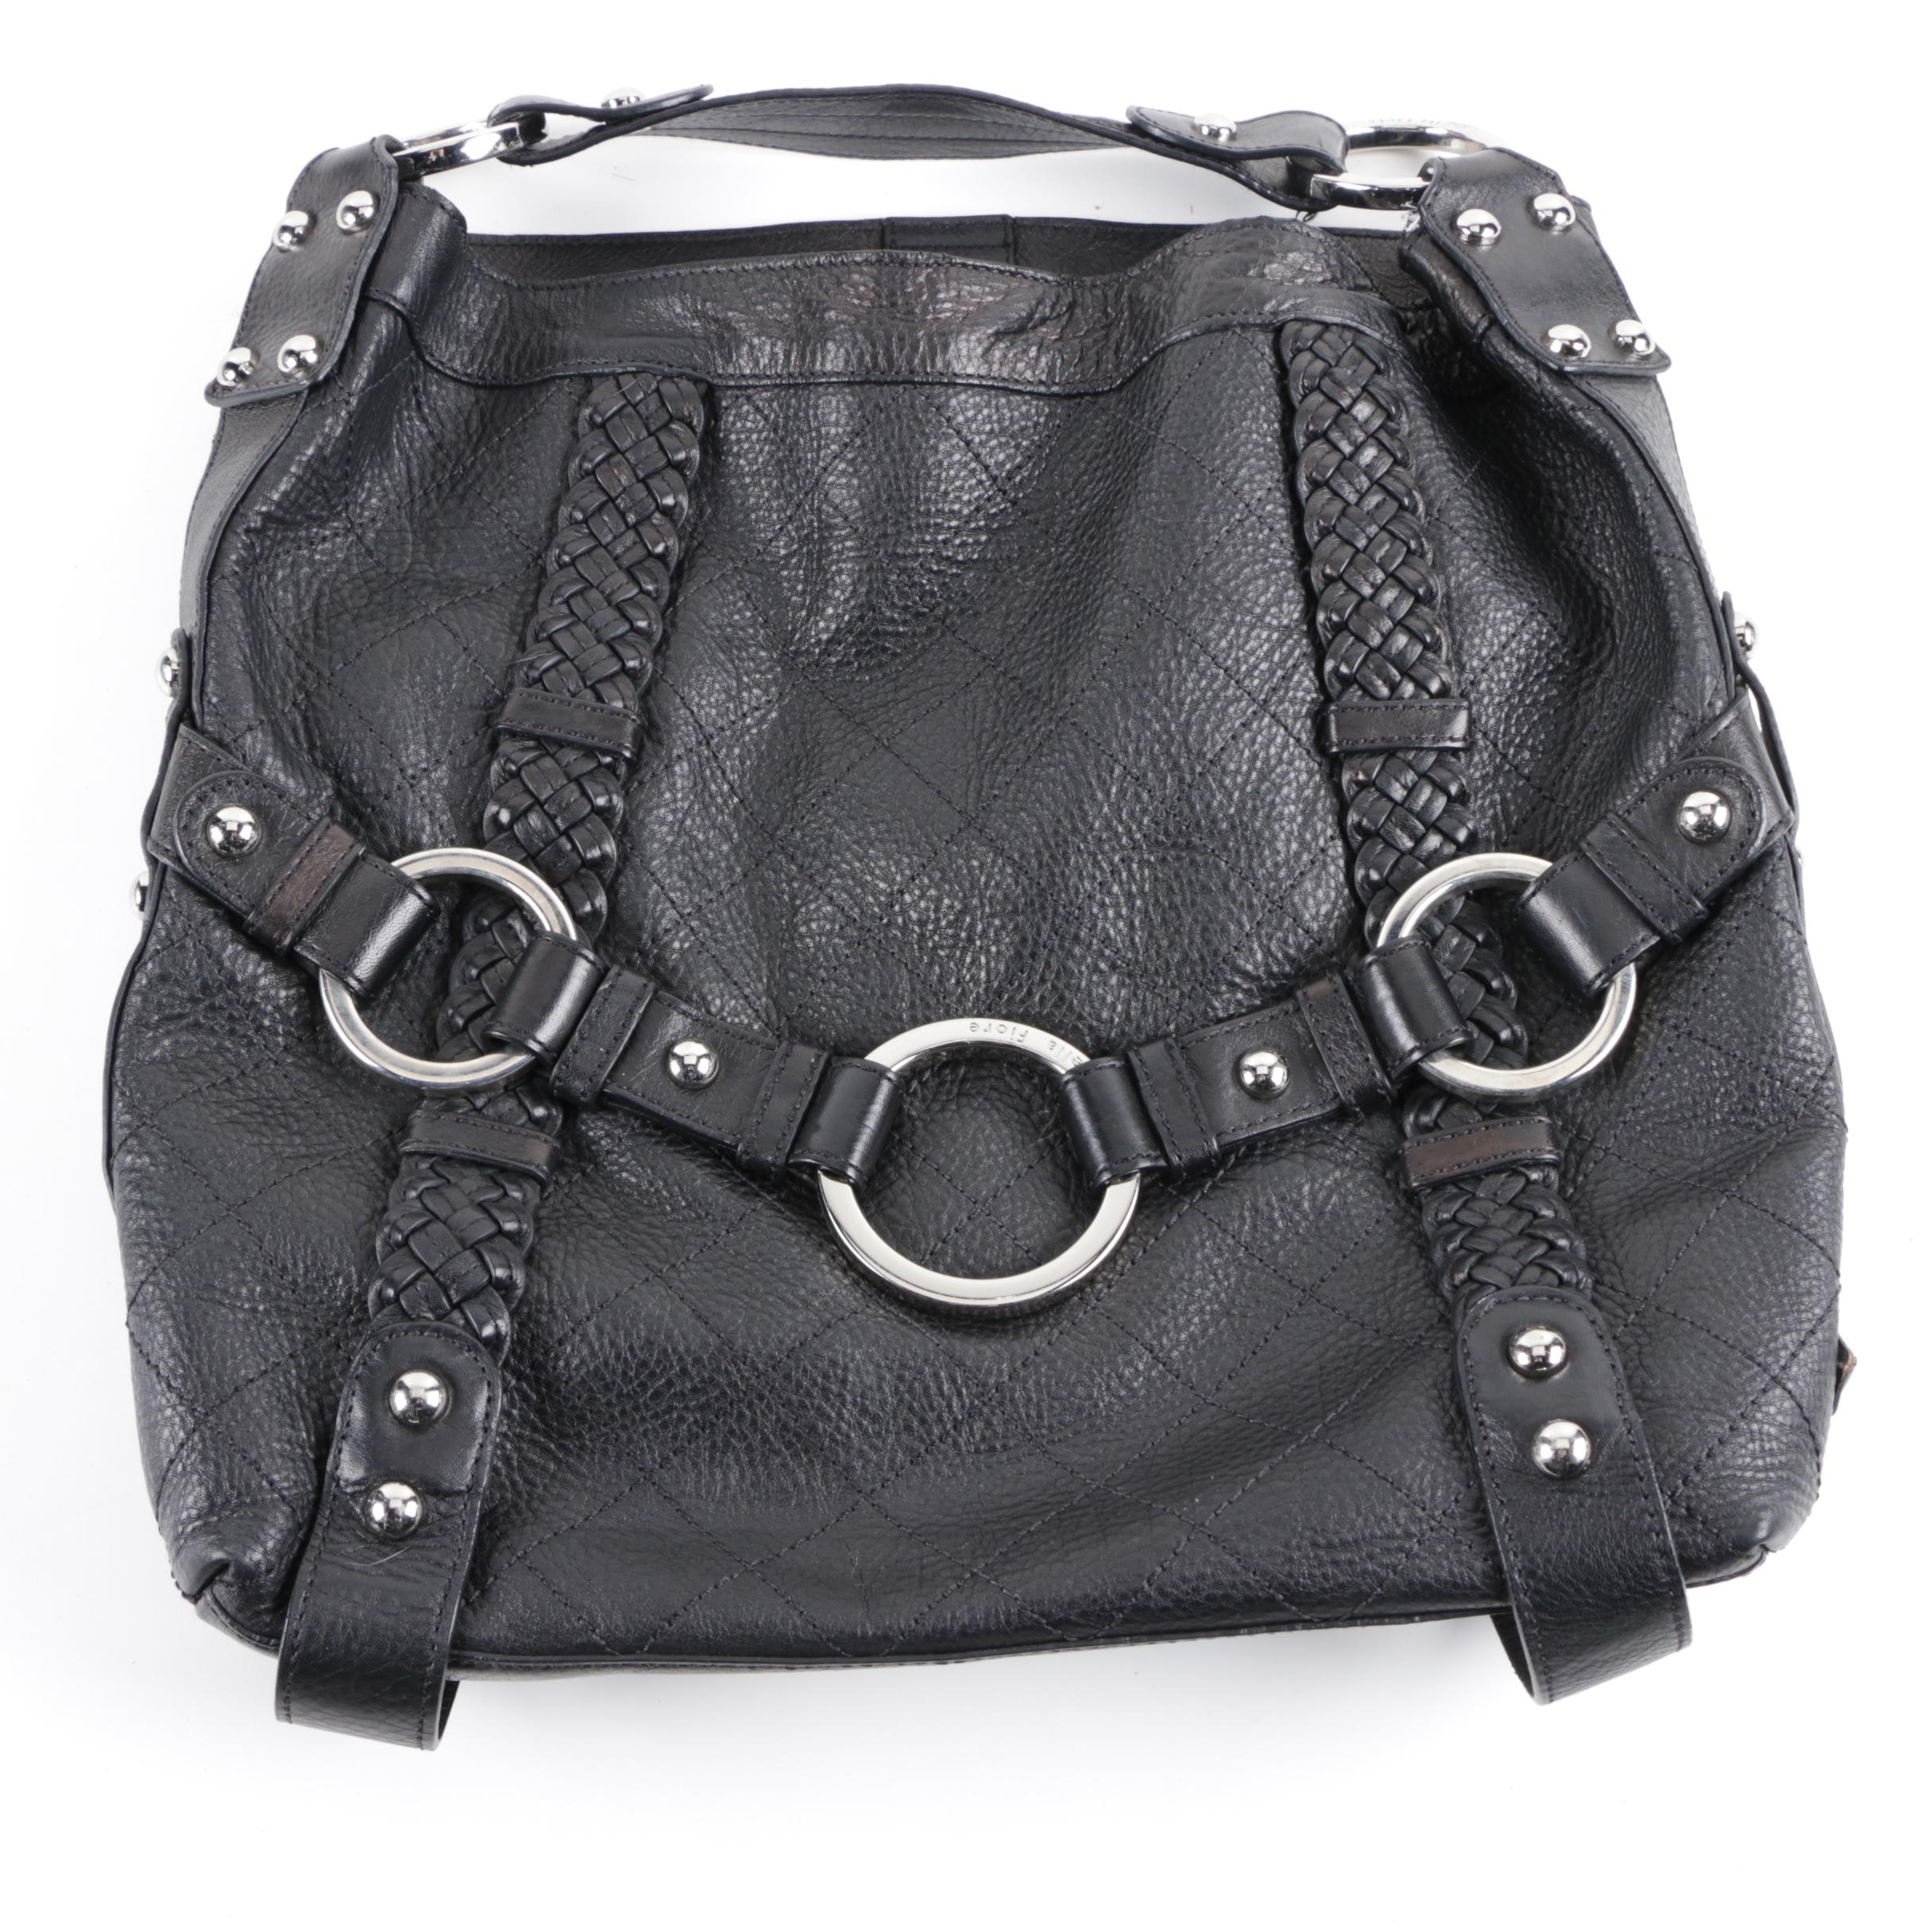 Isabella Fiore Black Quilted Pebbled Leather Handbag